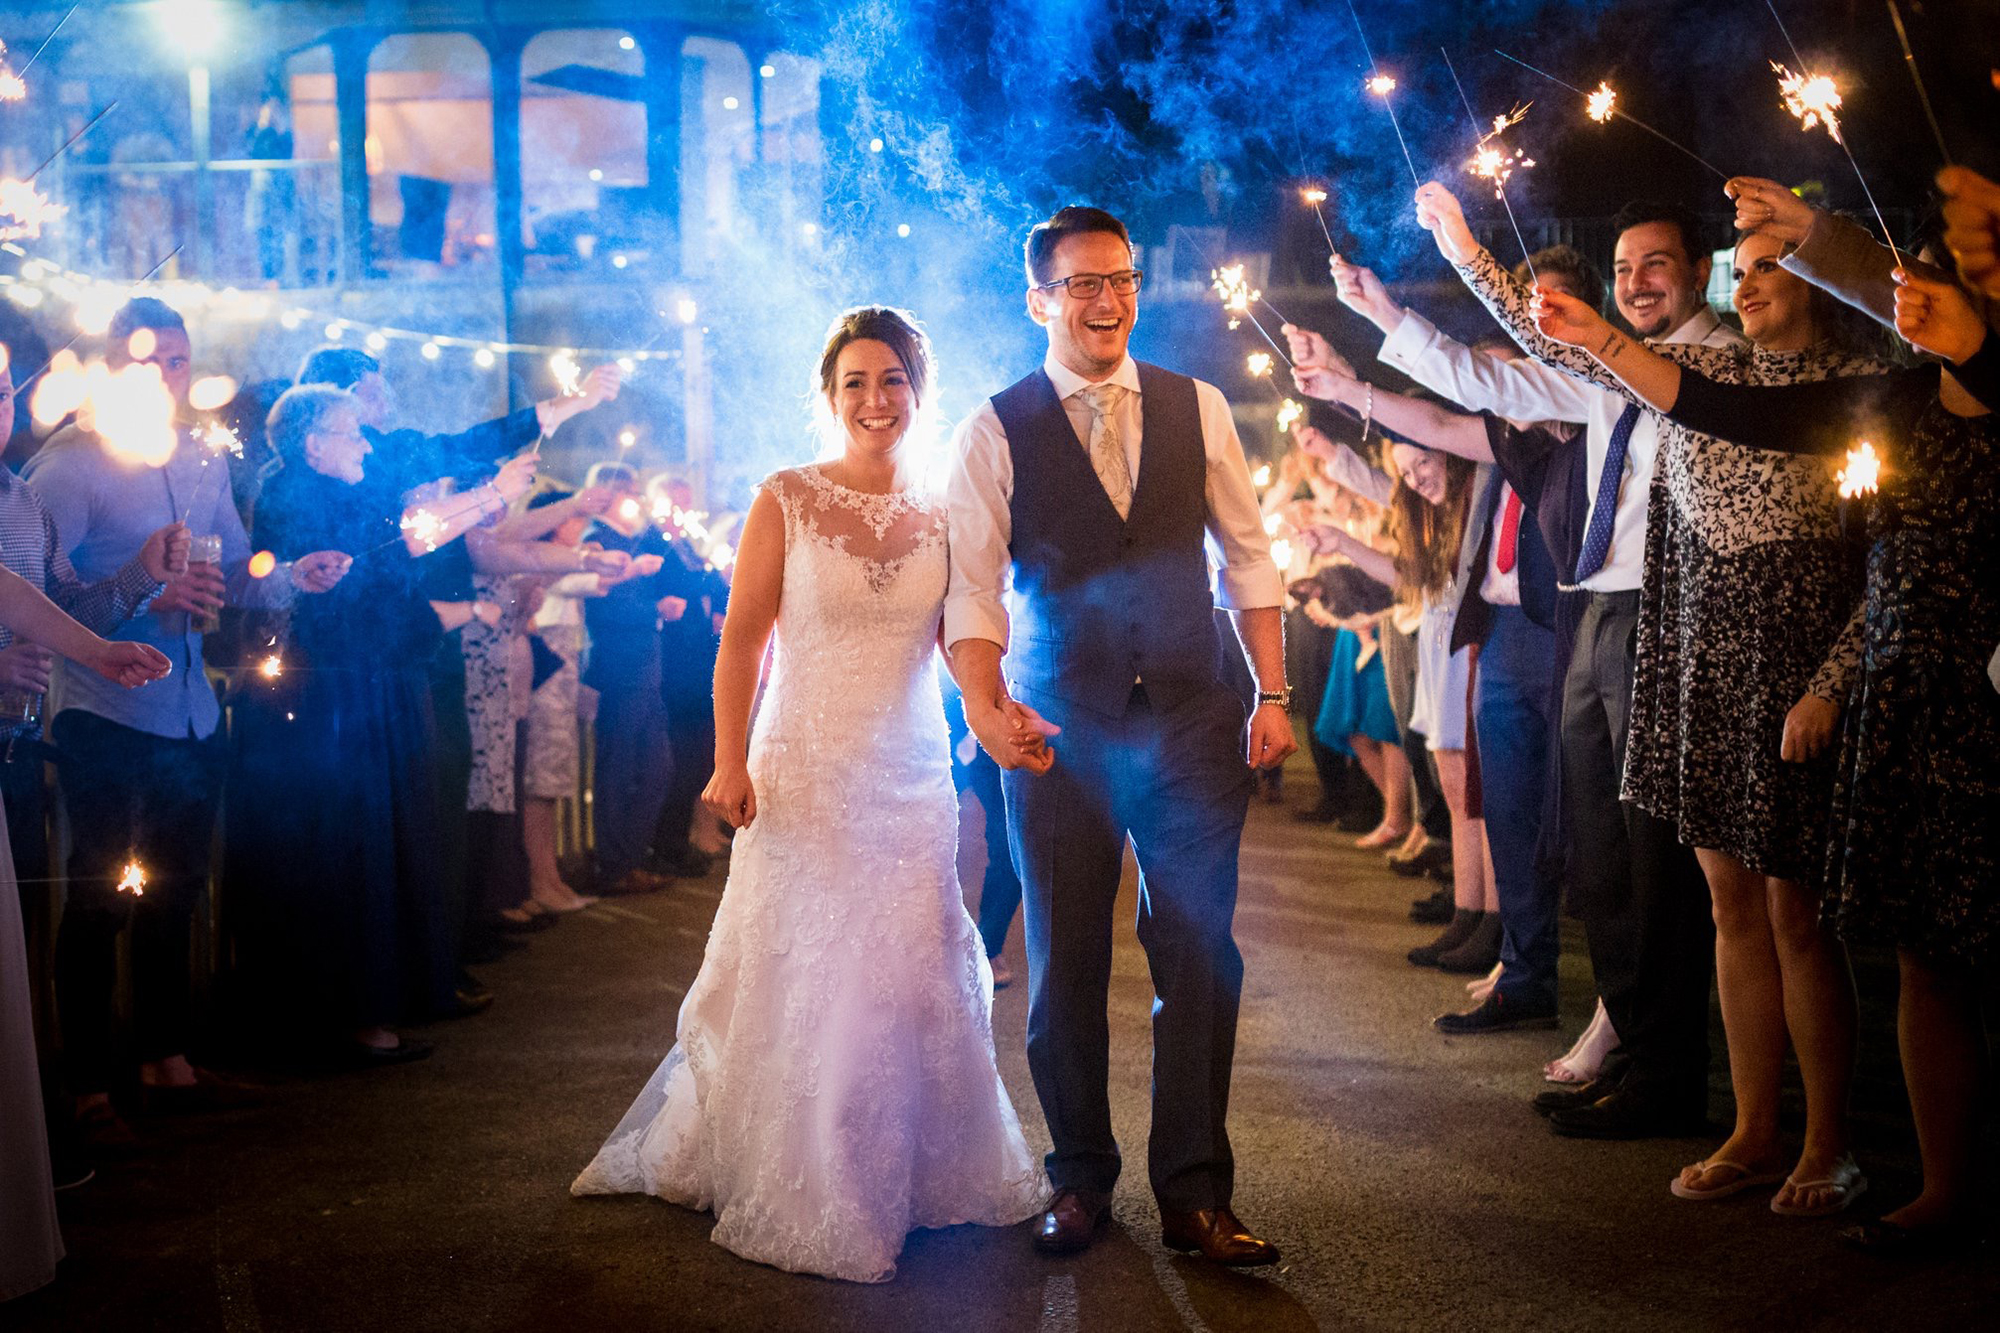 A newly married couple walking down a procession of celebrating friends and family holding sparklers at All Saints Hotel